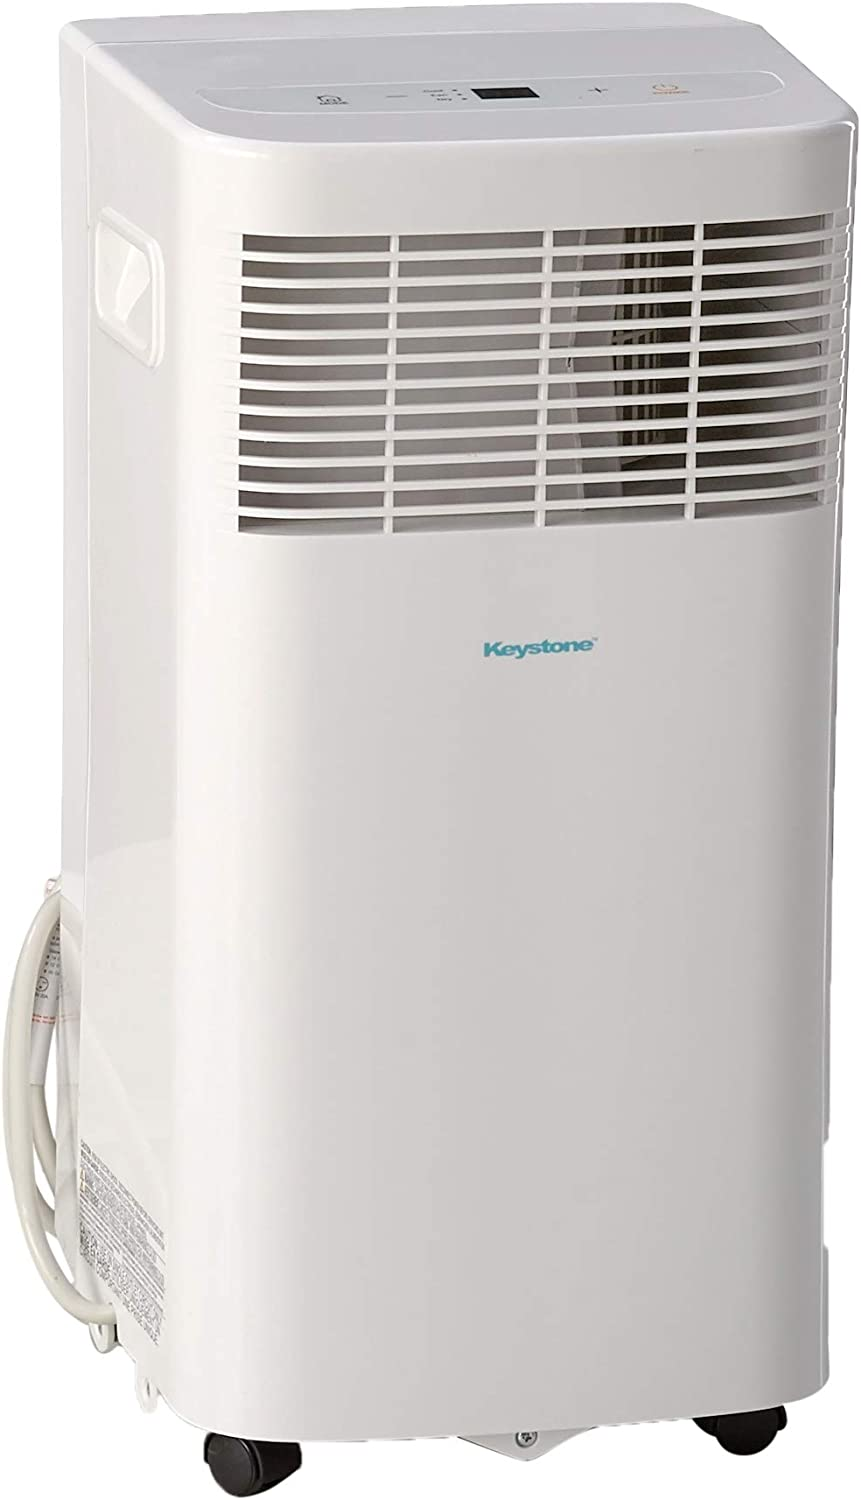 Keystone 8,000 BTU 115V Portable Air Conditioner with Remote Control, Rooms up to 100-Sq. Ft